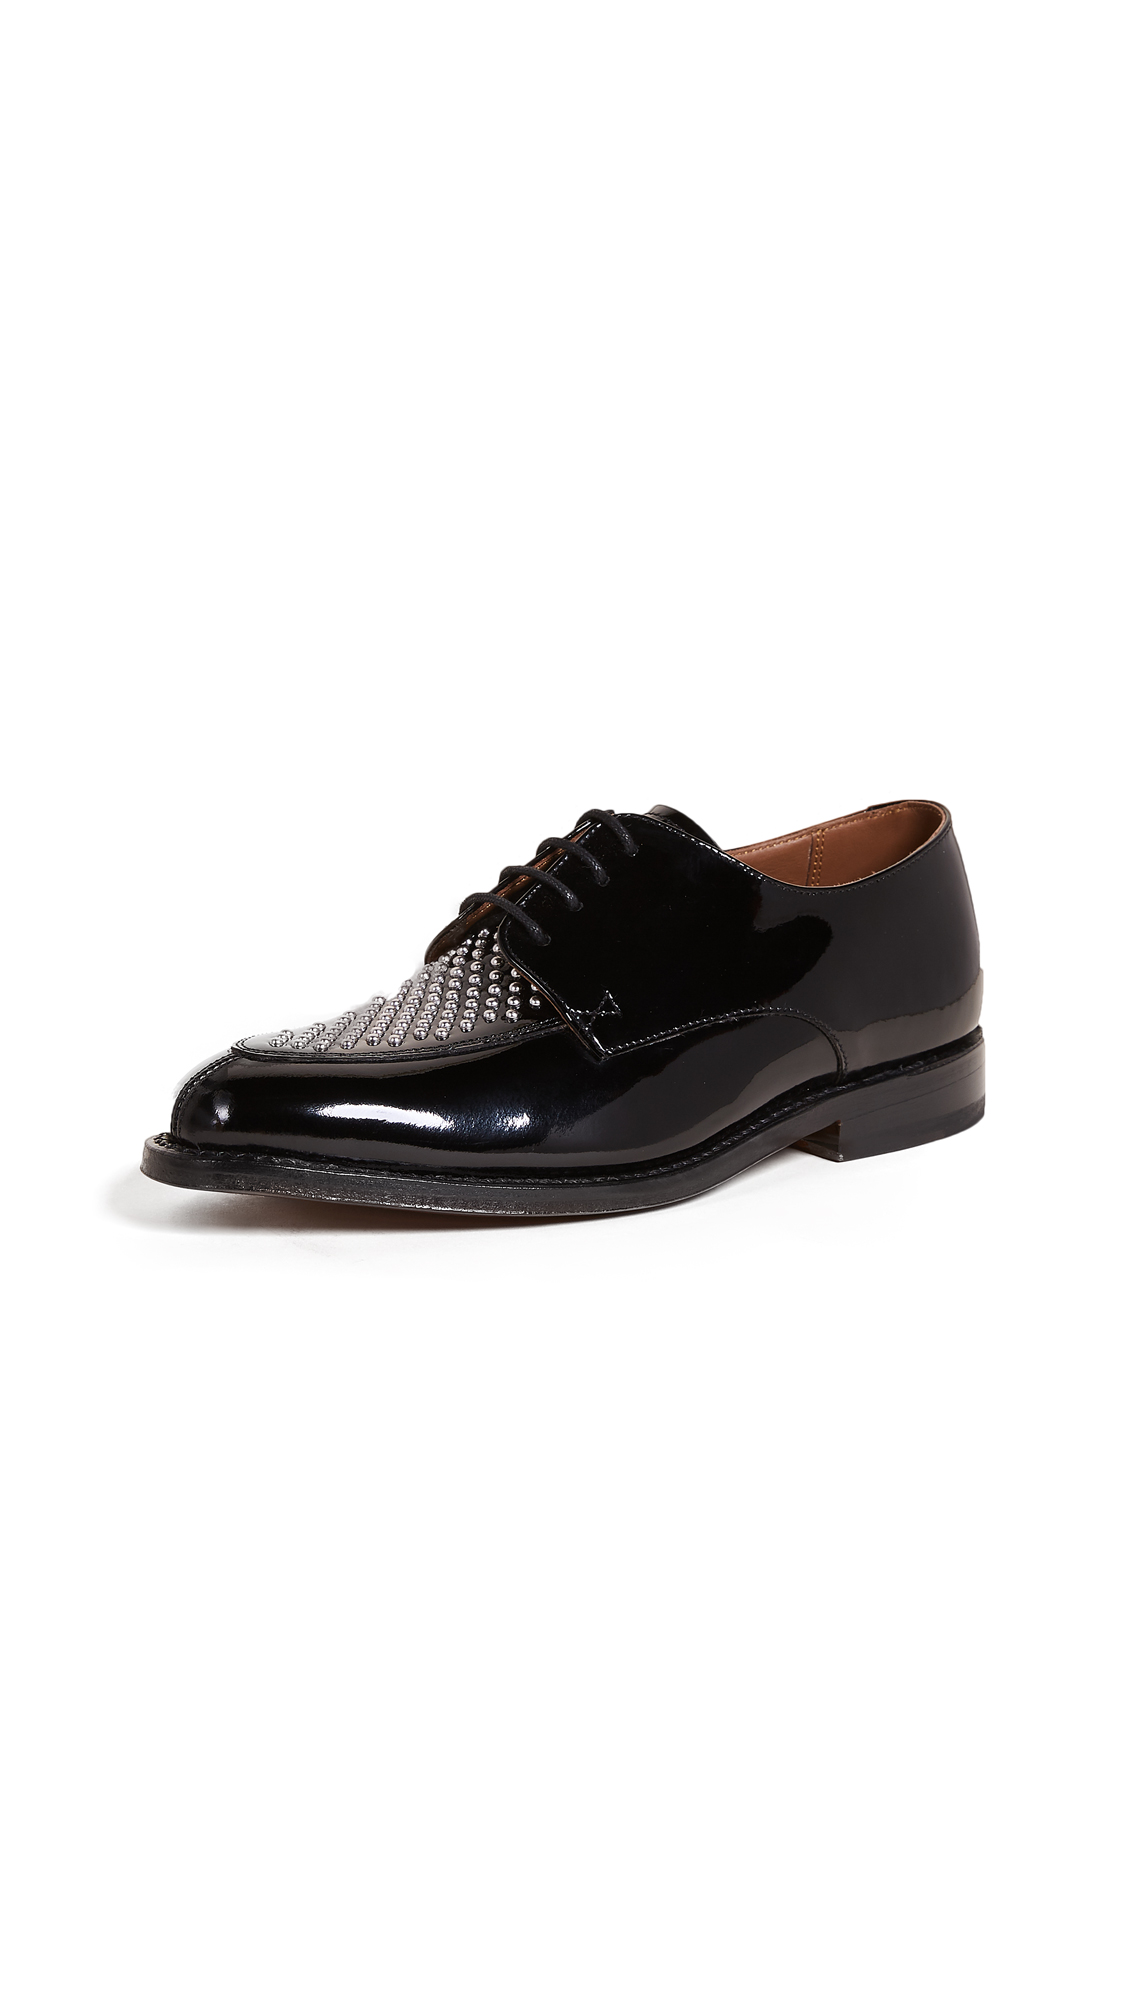 Grenson Lou Studded Oxfords - Black